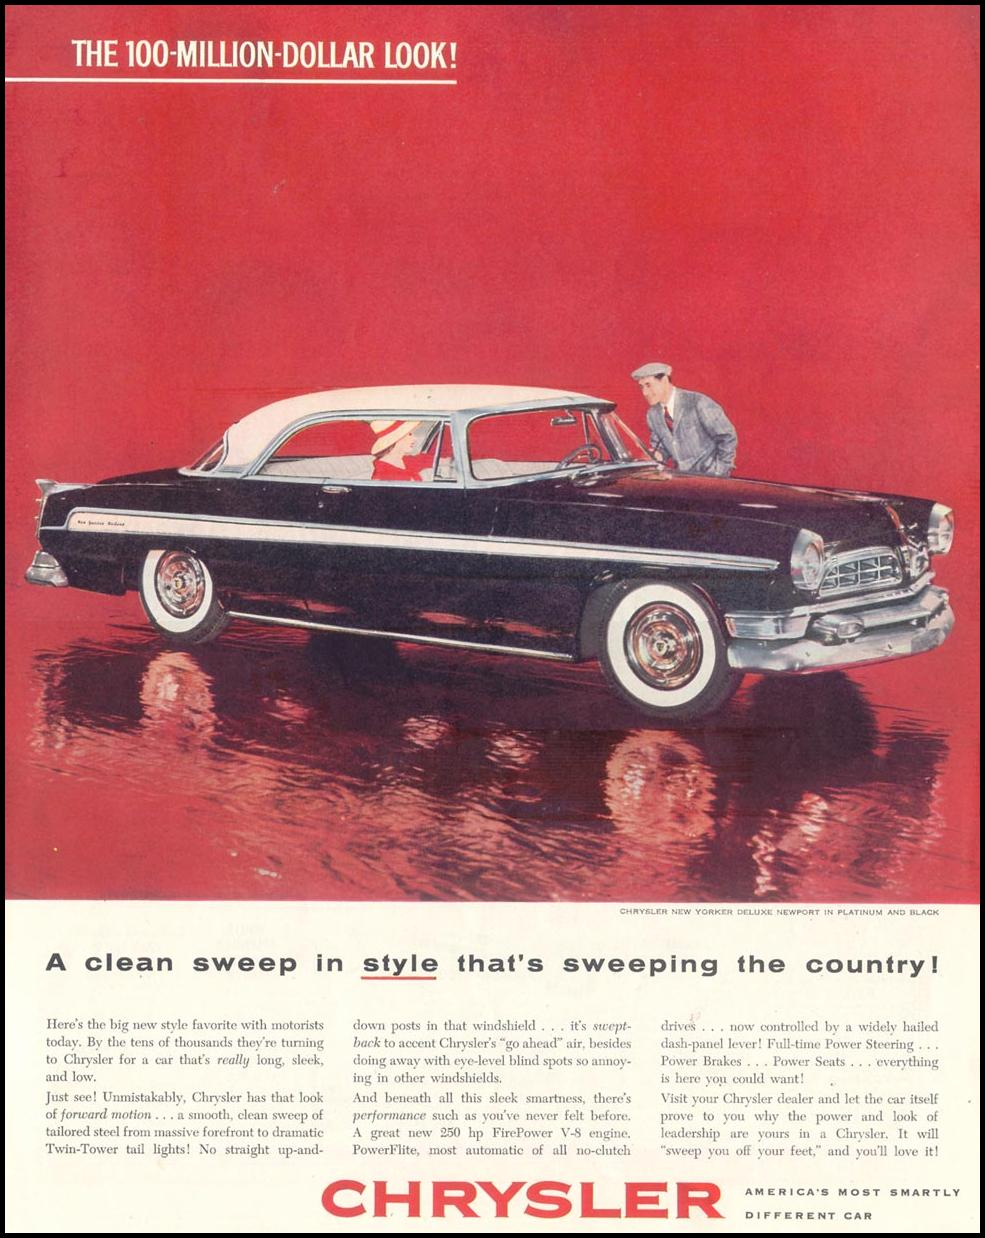 CHRYSLER AUTOMOBILES SATURDAY EVENING POST 04/09/1955